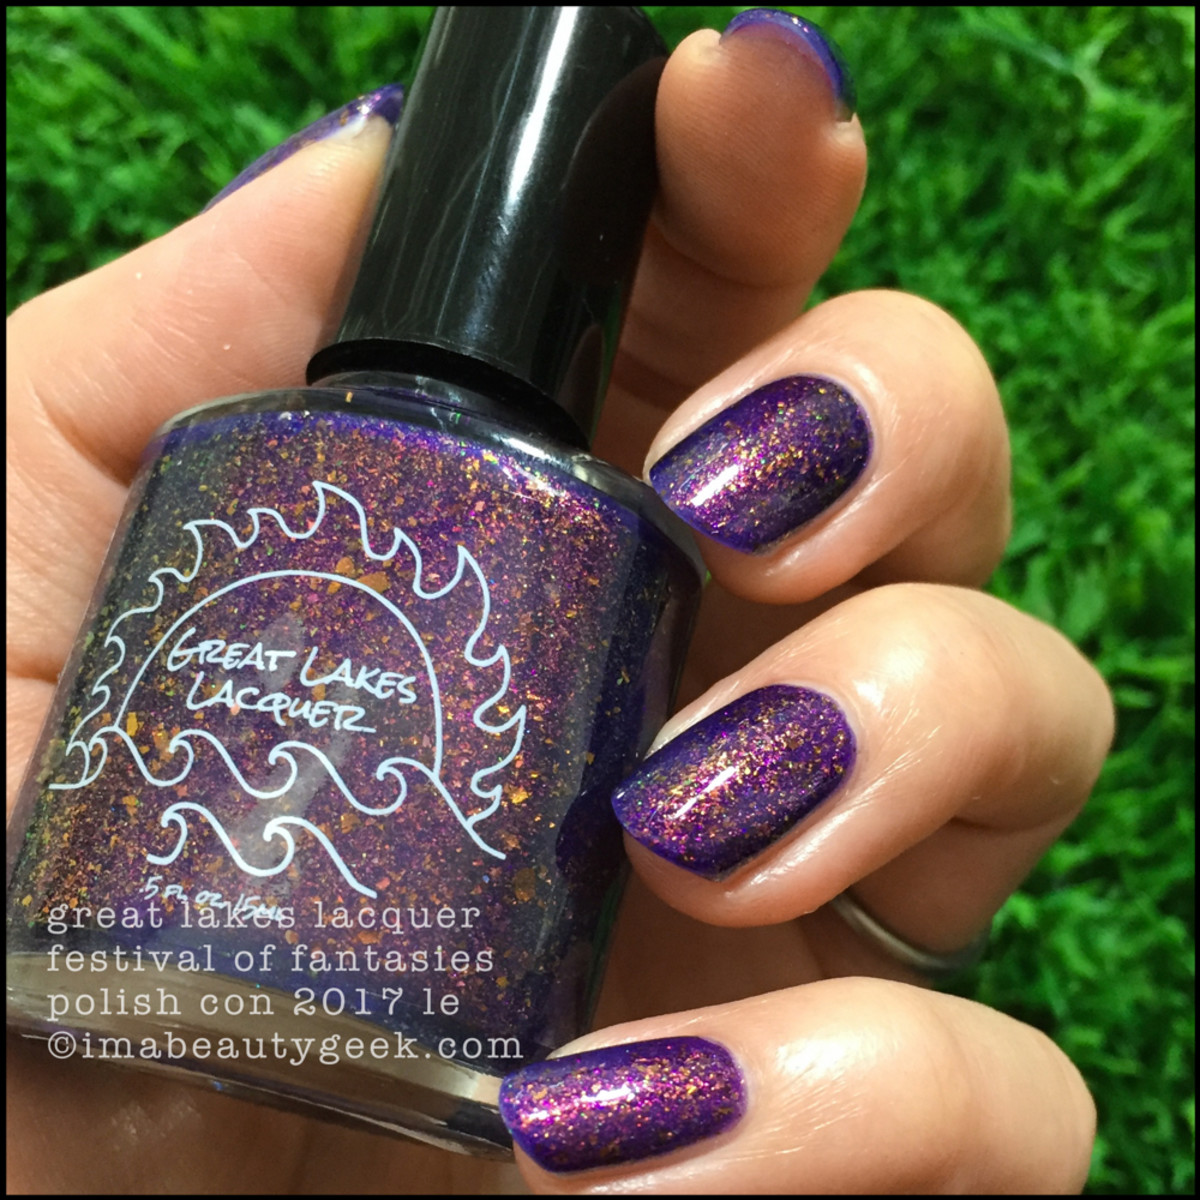 Great Lakes Lacquer Festival of Fantasies 2 _ Great Lakes Lacquer Polish Con 2017 Limited Editions